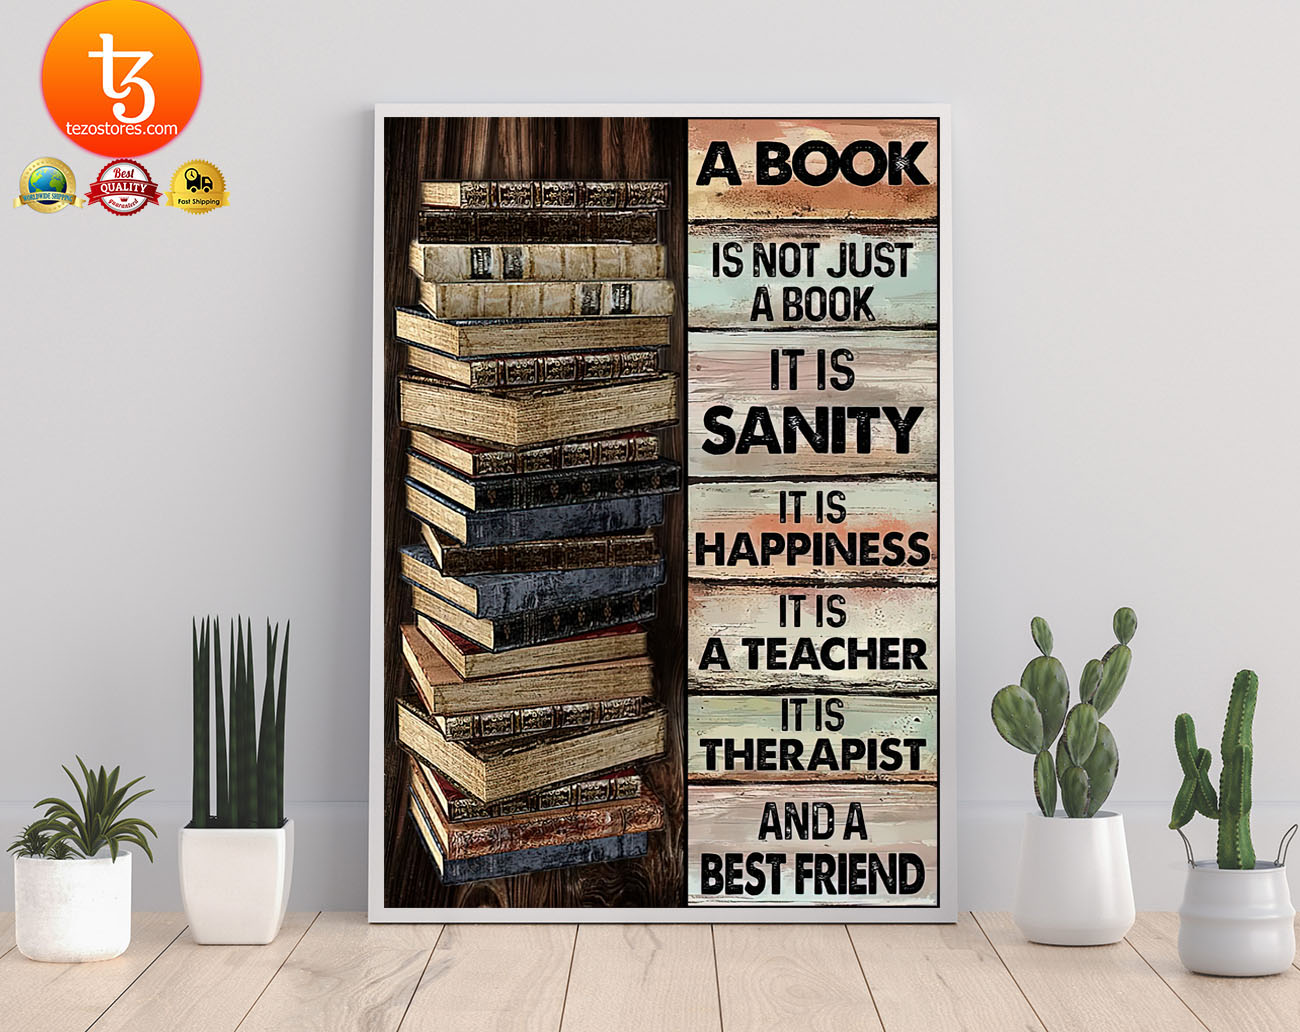 A book is not just a book it is sanity it is happiness poster 22